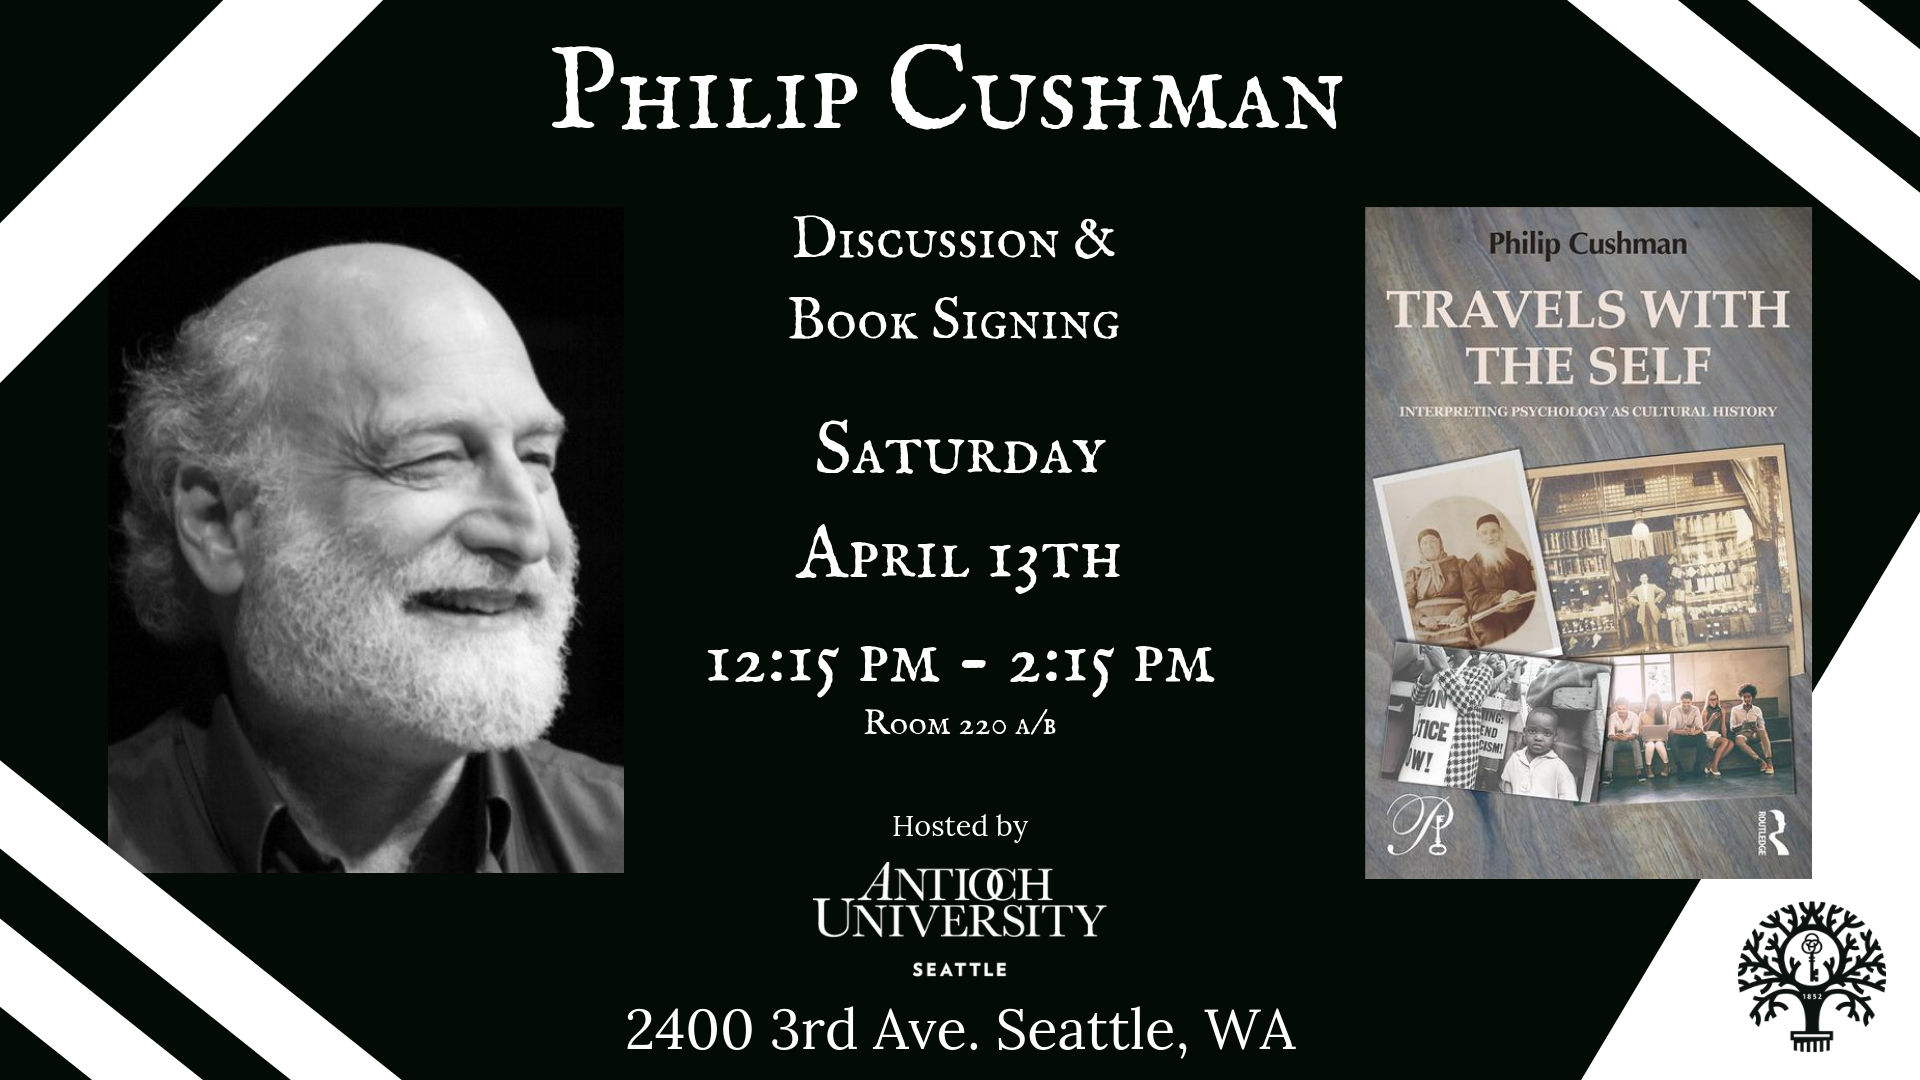 Philip Cushman Infographic about his book discussion and signing.